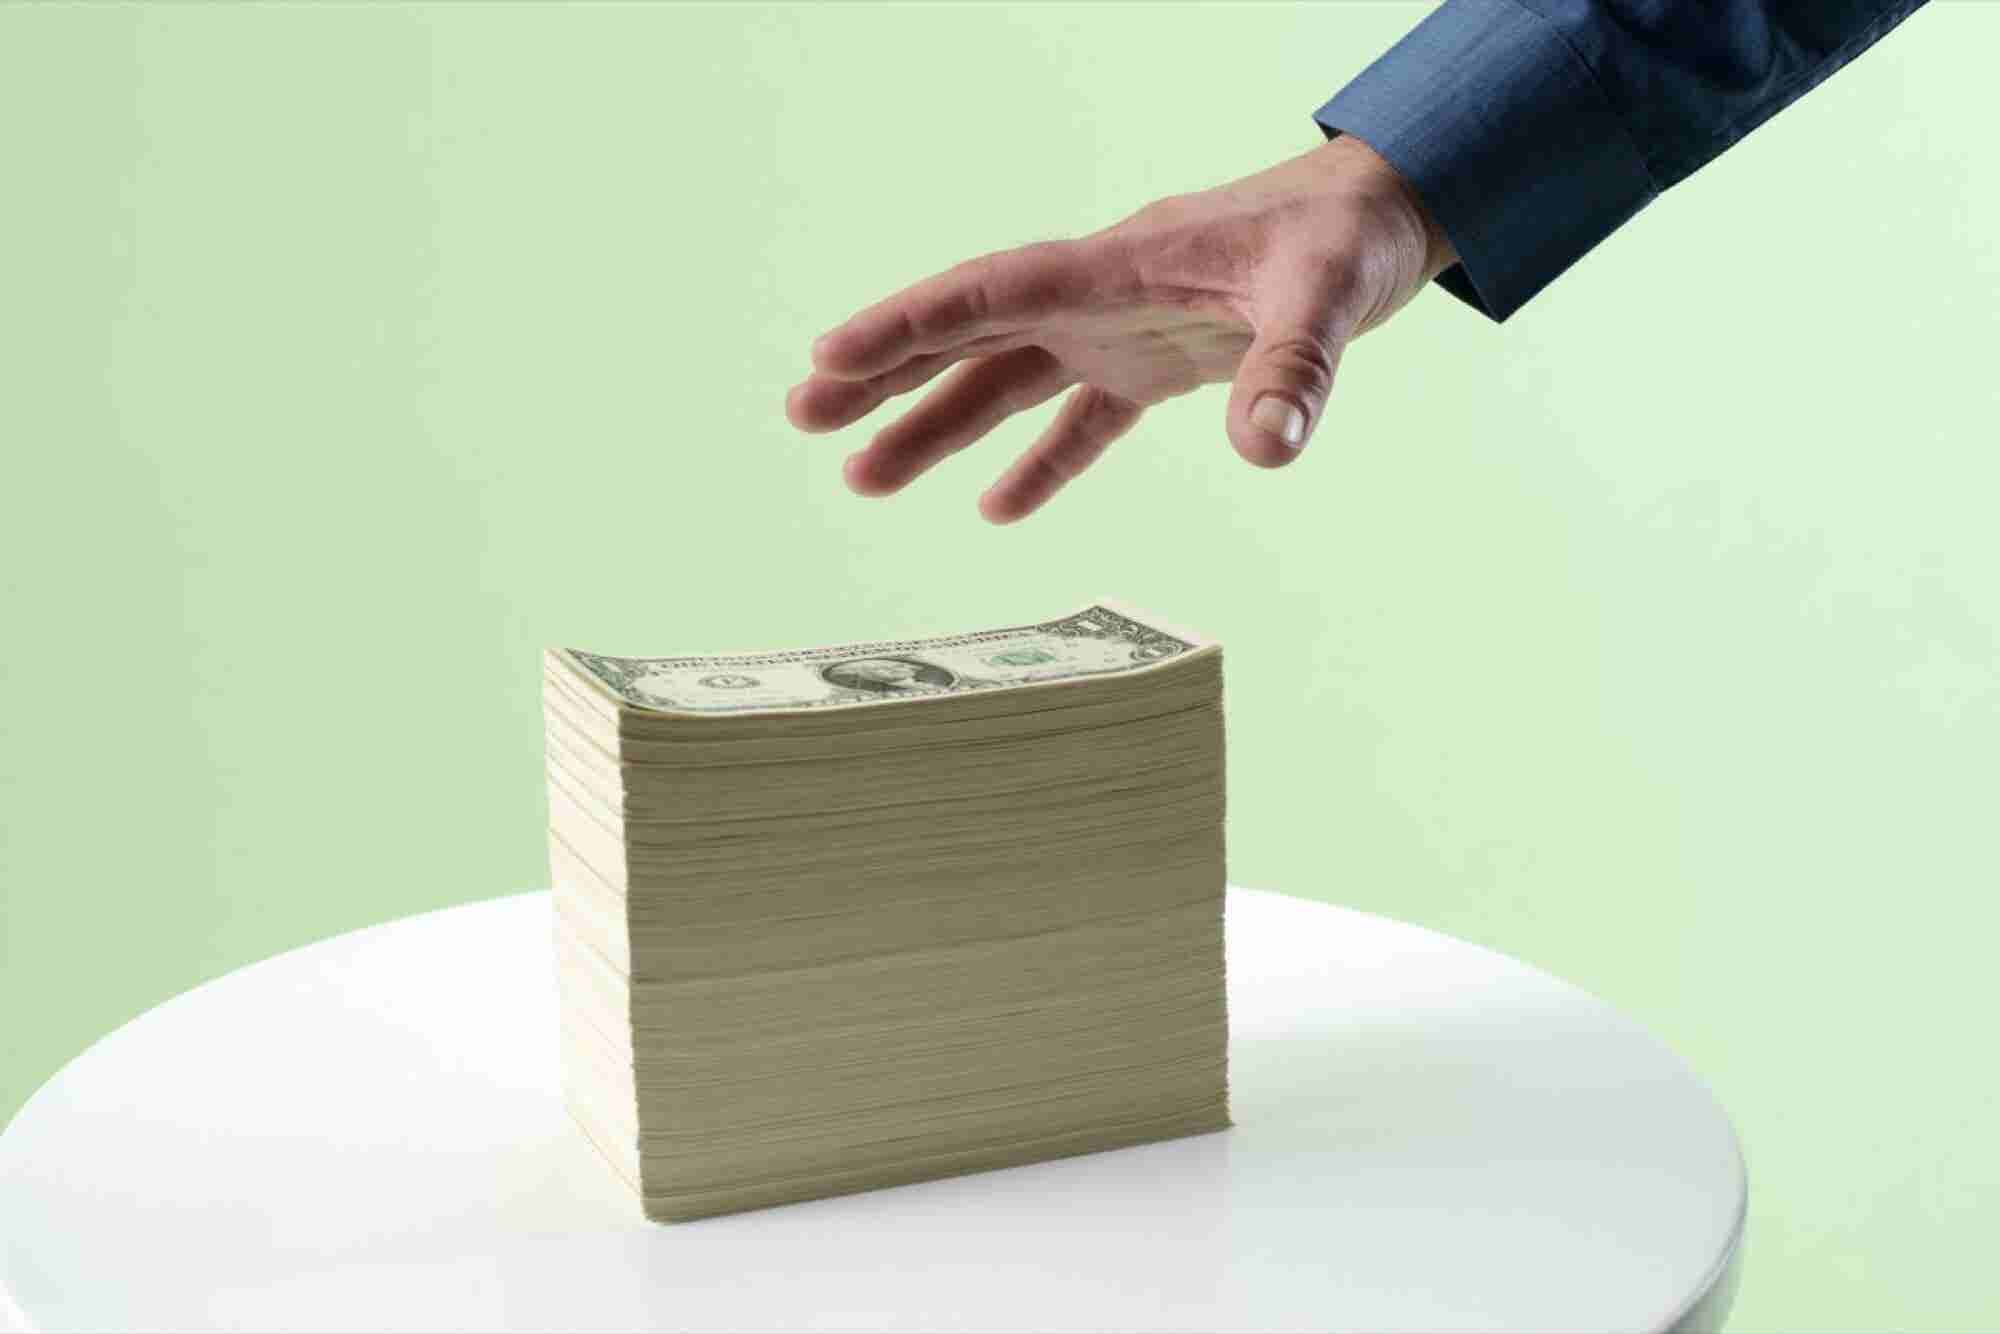 4 Reality-Based Alternatives to 4 Get-Rich-Quick Schemes Entrepreneurs Keep Hearing About